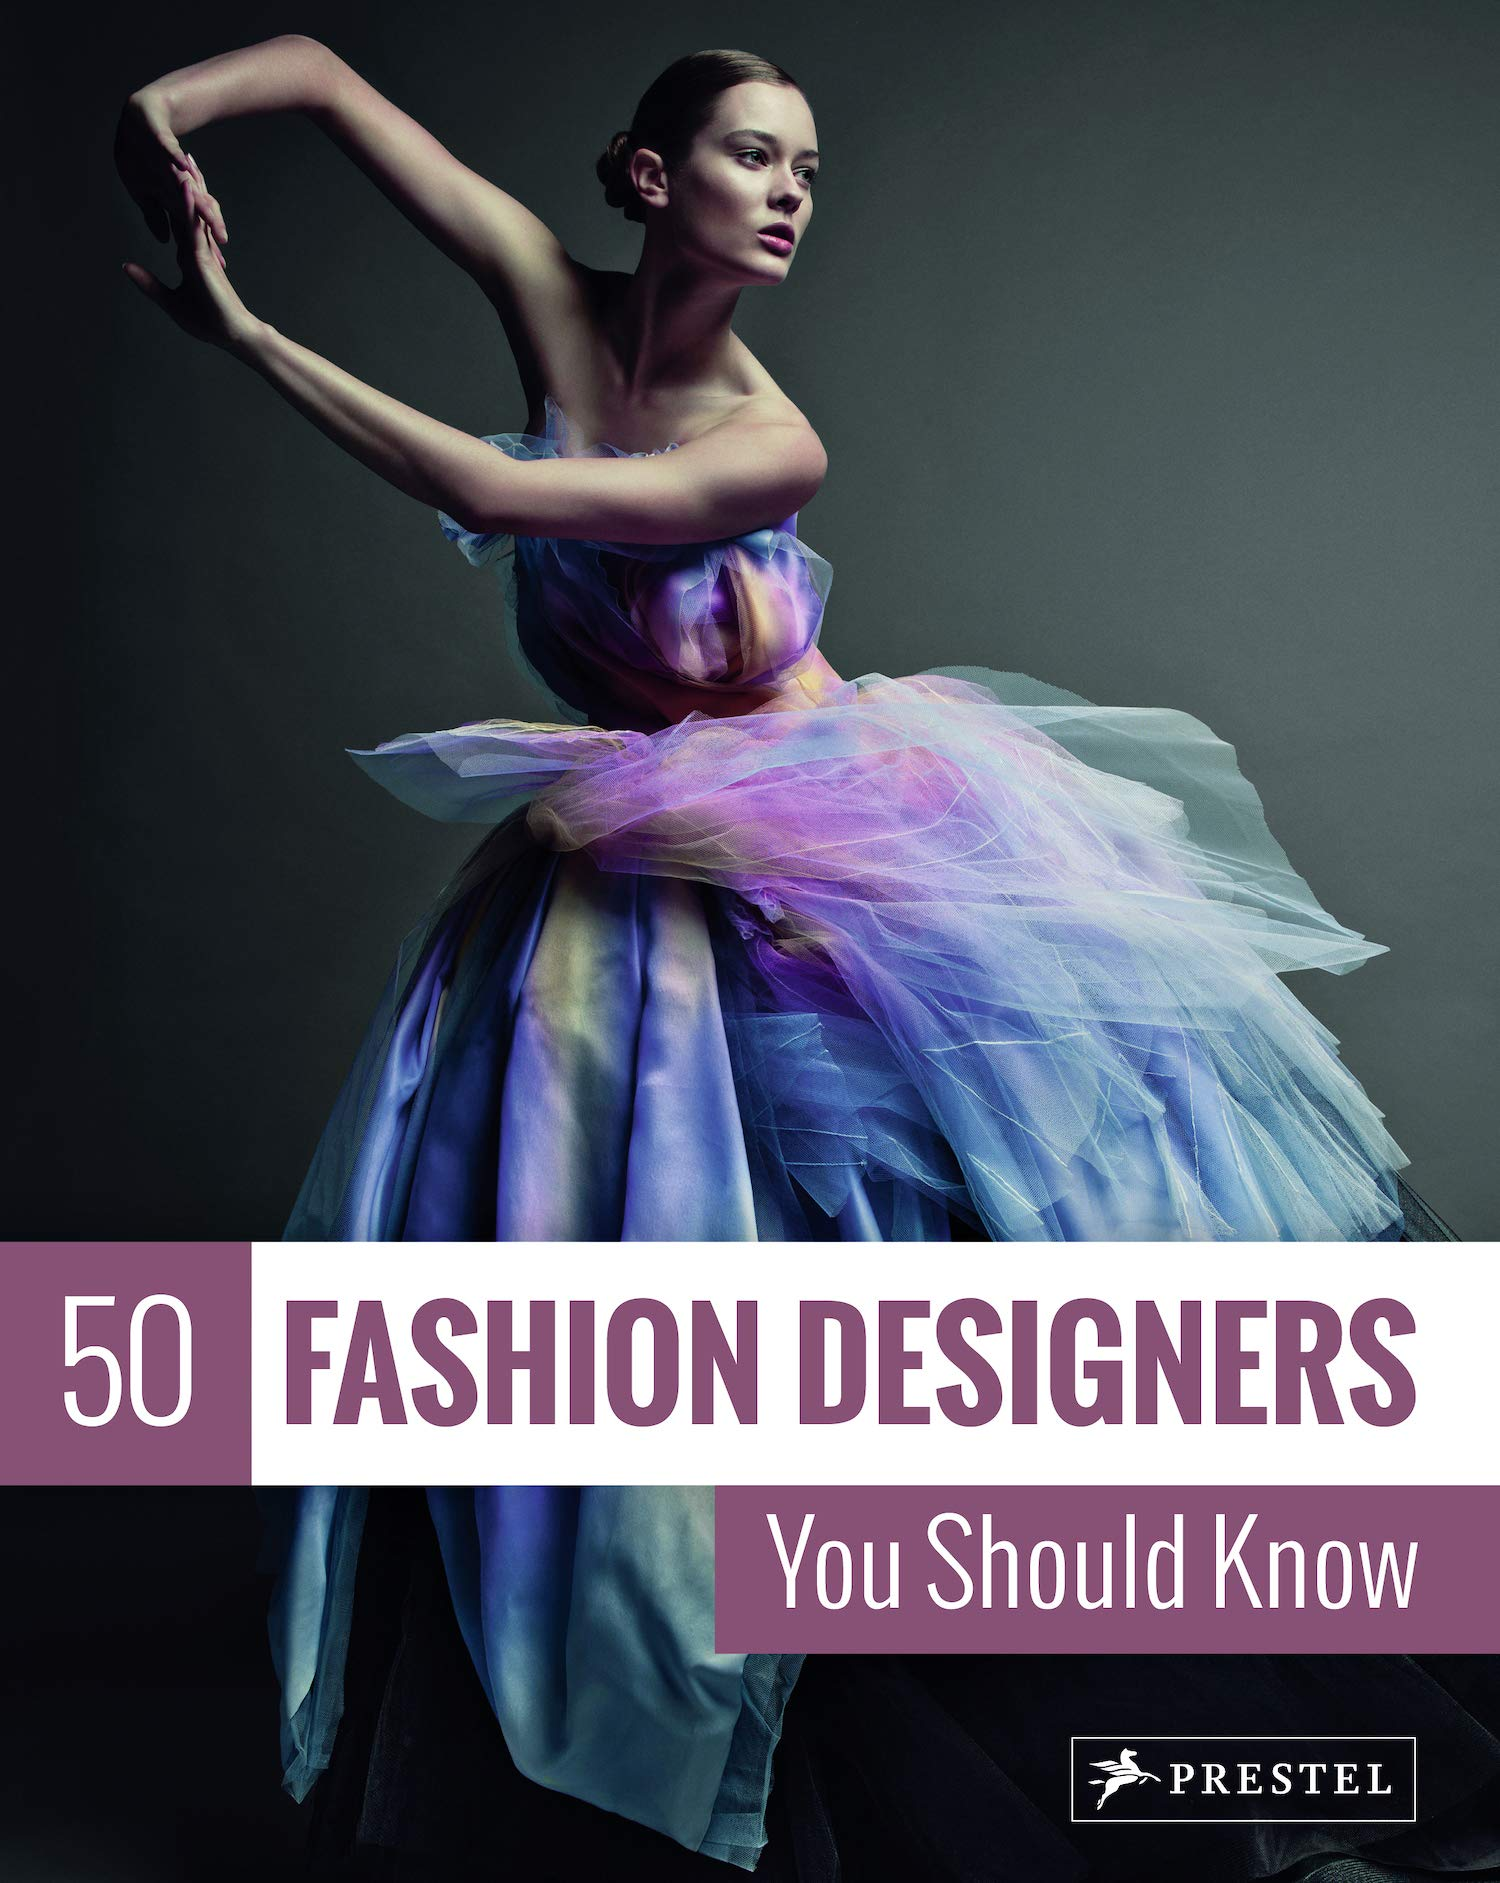 50 Fashion Designers You Should Know 50 You Should Know Werle Simone 9783791385891 Amazon Com Books